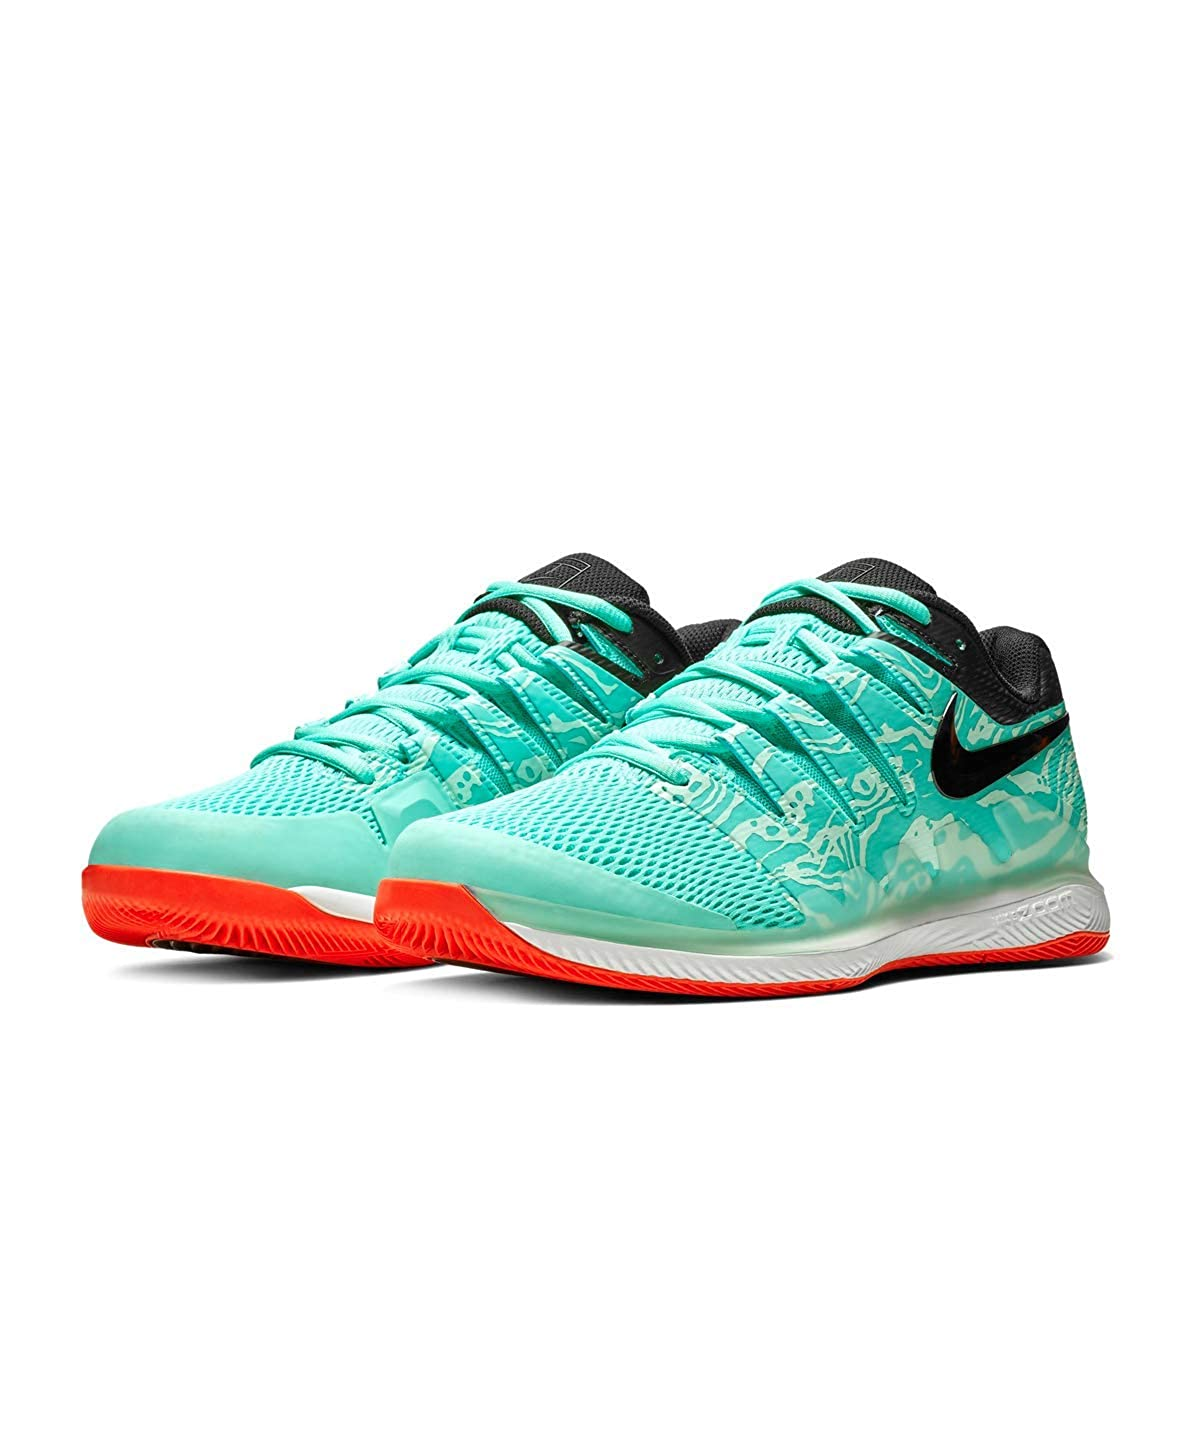 2b889f06da90a Nike Men's Zoom Vapor X Tennis Shoes (Aurora/Teal Tint/Phantom/Black ) 9 M  US